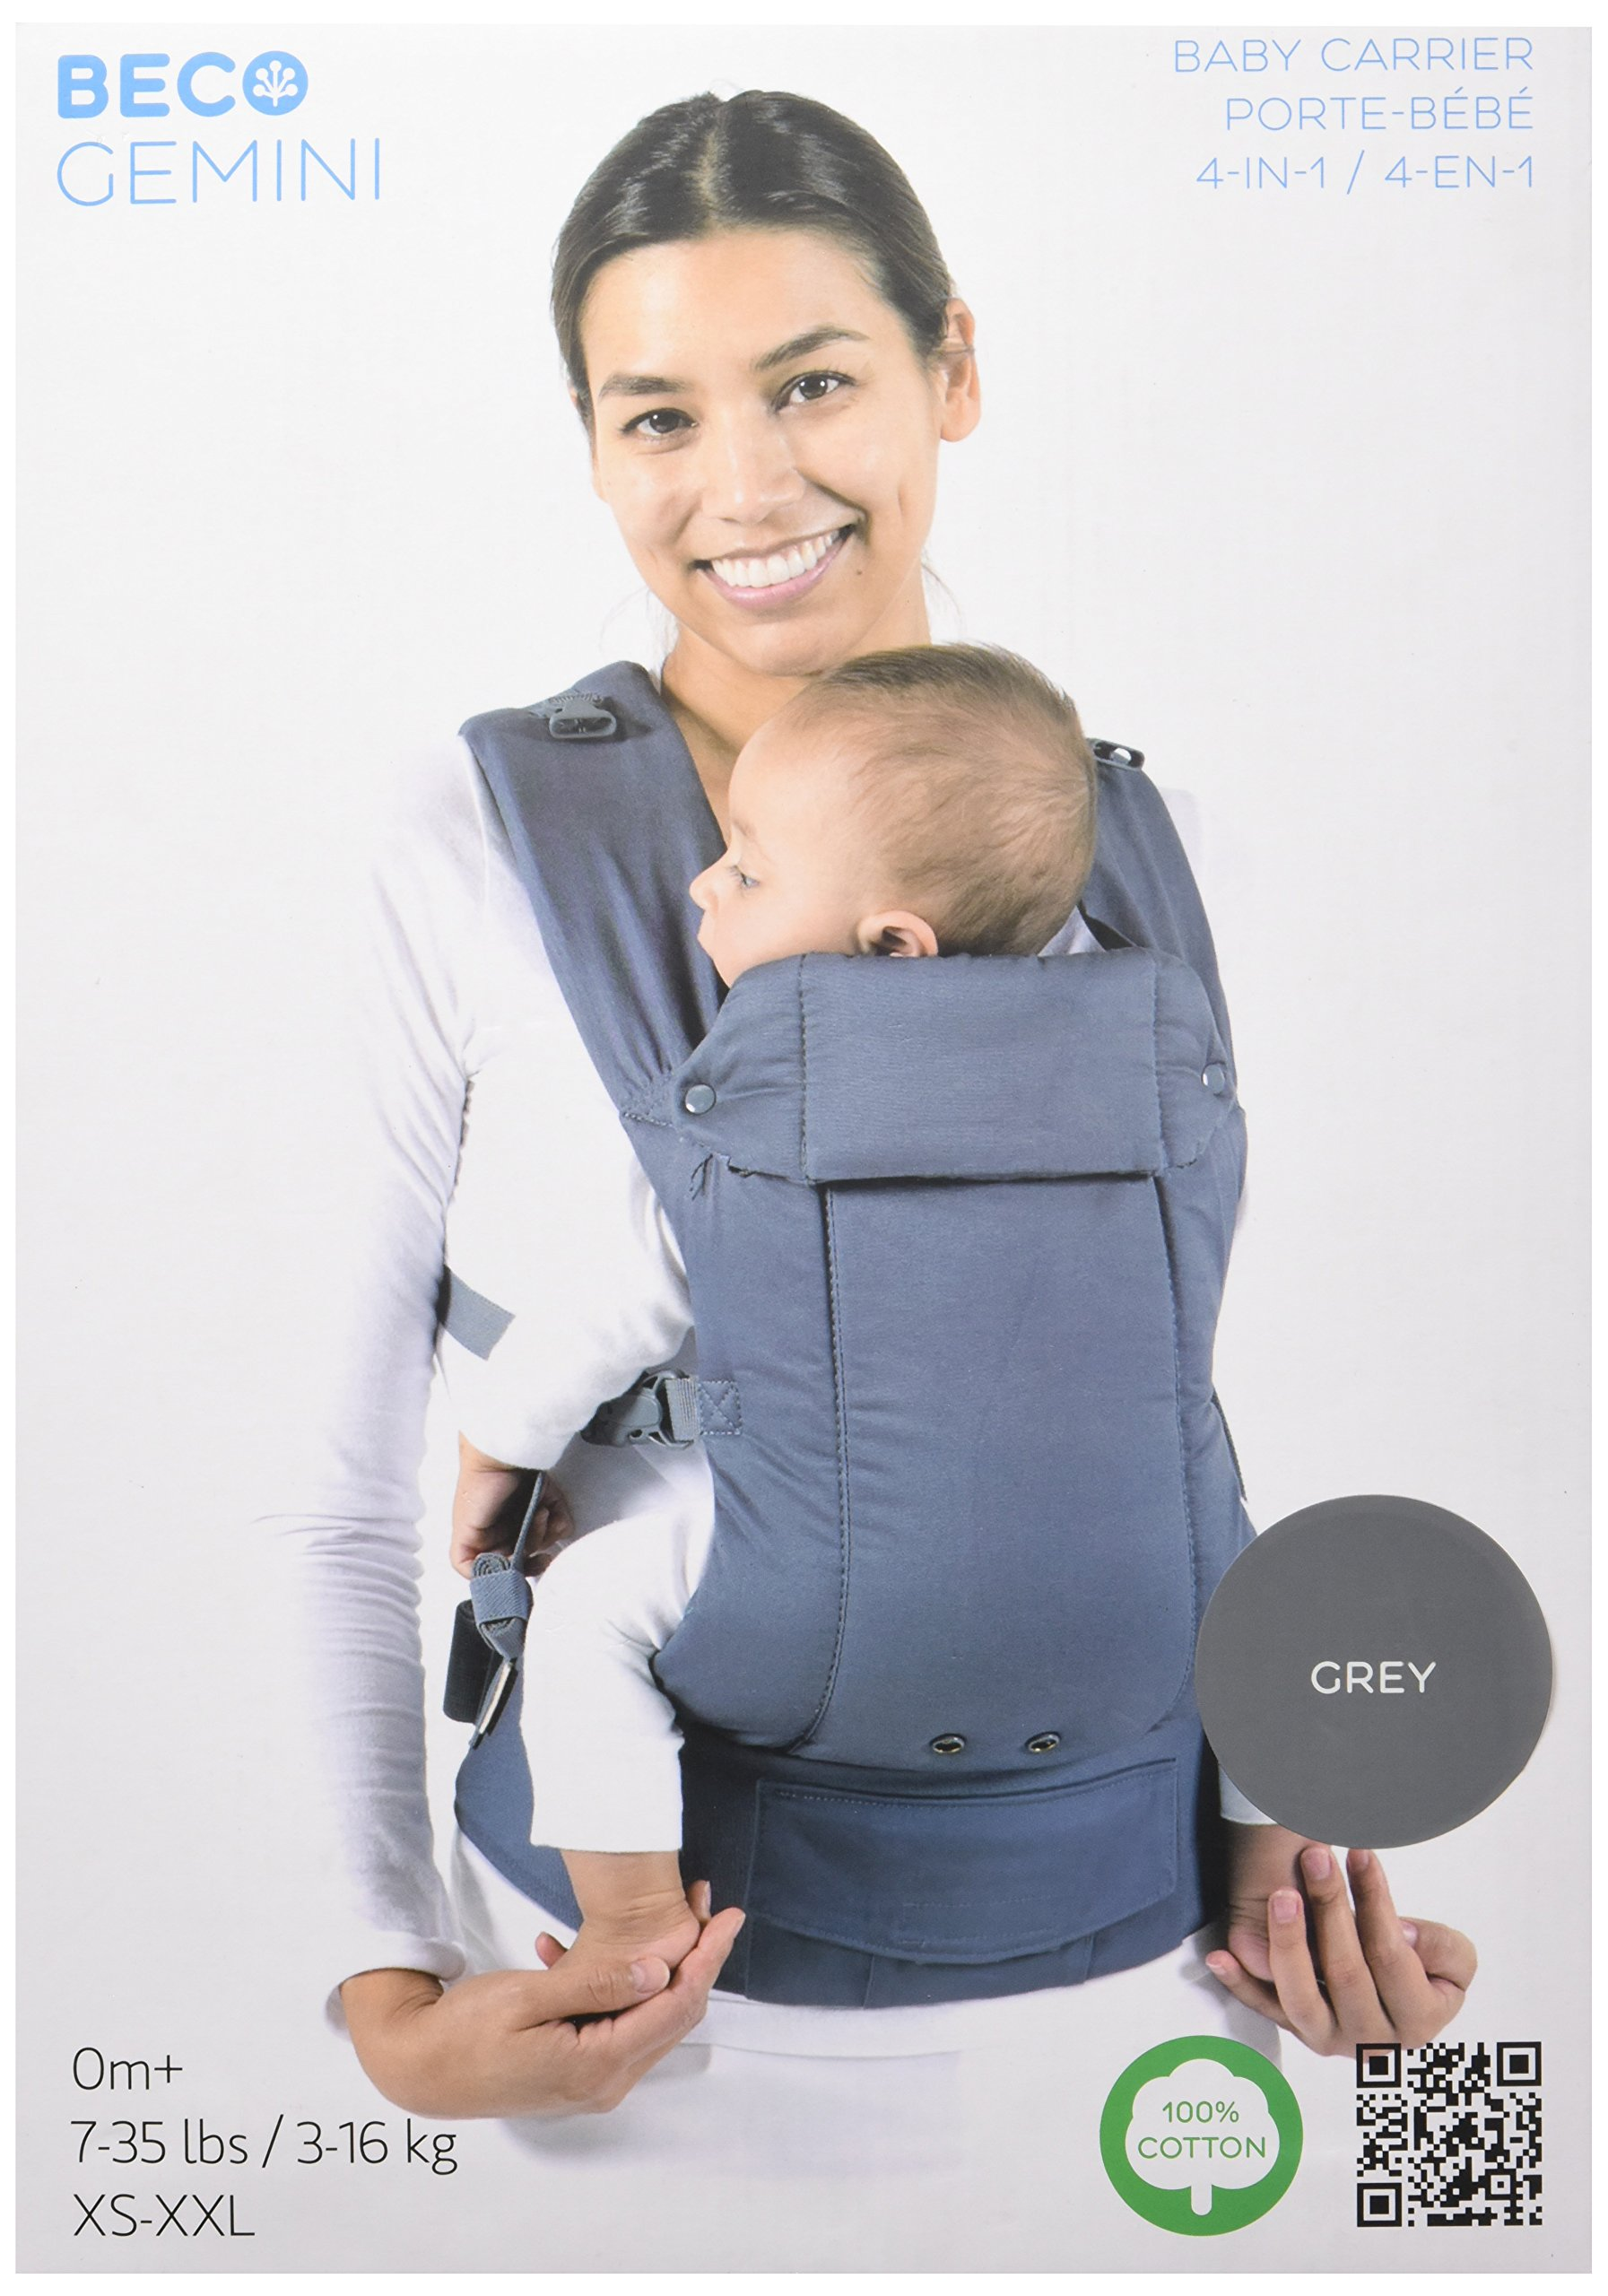 Beco Gemini, Grey - Front Carry Facing-Out Baby and Toddler Carrier Beco Beco's first front carry, facing-out carrier, the Beco Gemini is a 4-in-1 baby carrier offering four comfortable carrying positions - front facing in, facing out, hip and back carry. A comfortable, practical baby carrier with a definite sense of style. The Beco Gemini features a supportive waistband and wide padded shoulder straps that can be worn backpack style or crossed on your back for discrete nursing and better weight distribution. The padded headrest can flip up for neck support or can be cuffed down and fastened with snaps. When baby wants to face out, the headrest also serves as a padded spot for their head or chin to rest against. Birth to toddler, the Beco Gemini is easy to use, super comfy and keeps your precious bundle close to your heart and makes it easier for you to get on with your day to day. 1